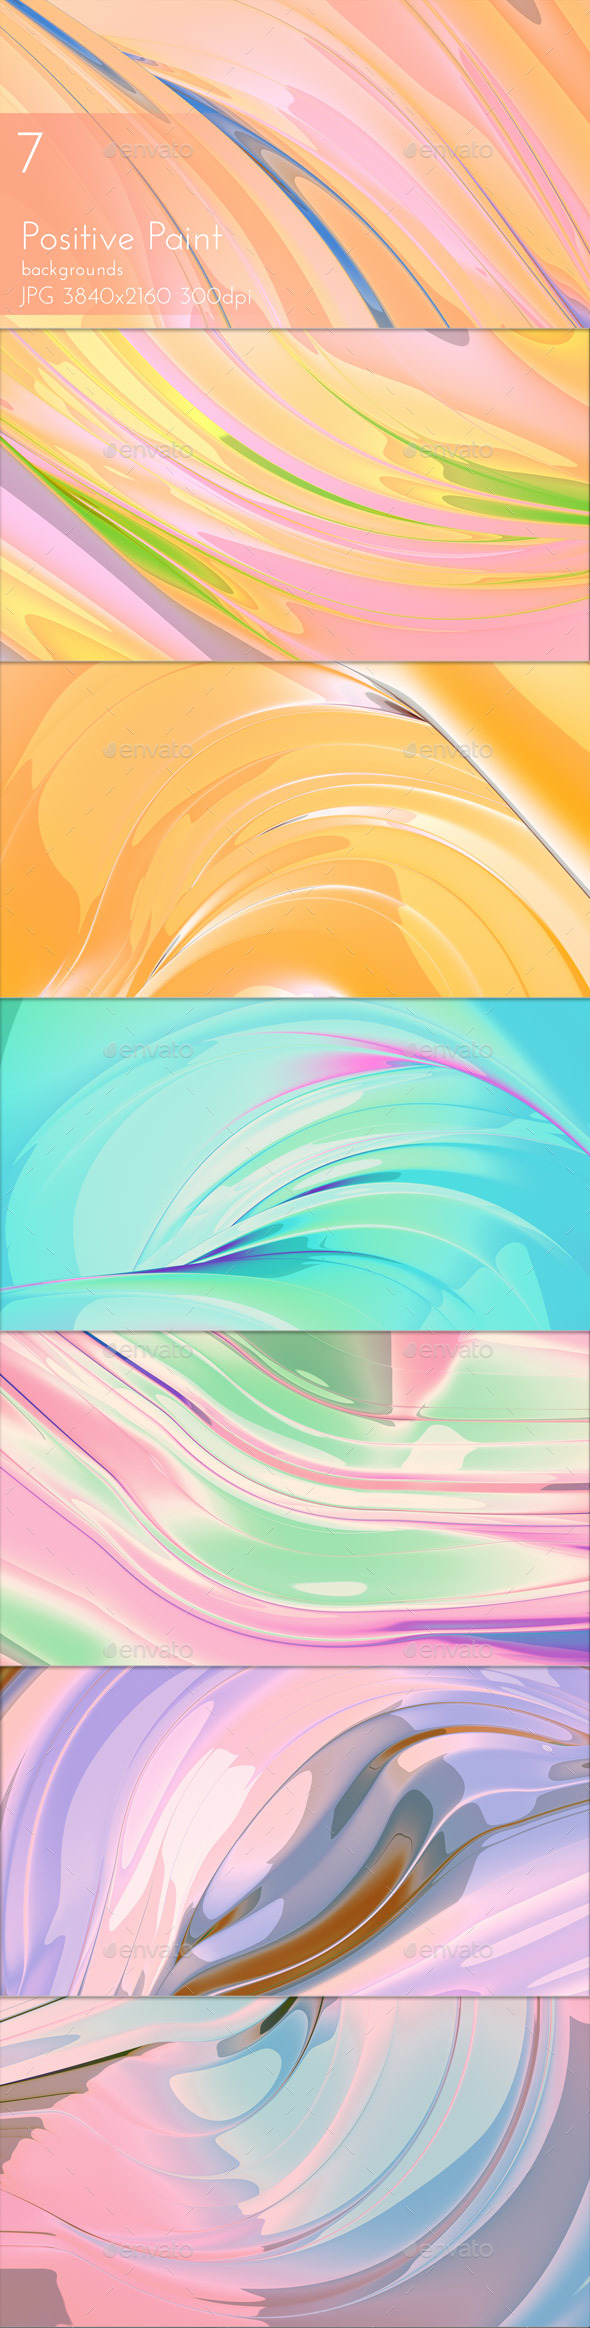 Positive Painted Background - Abstract Backgrounds